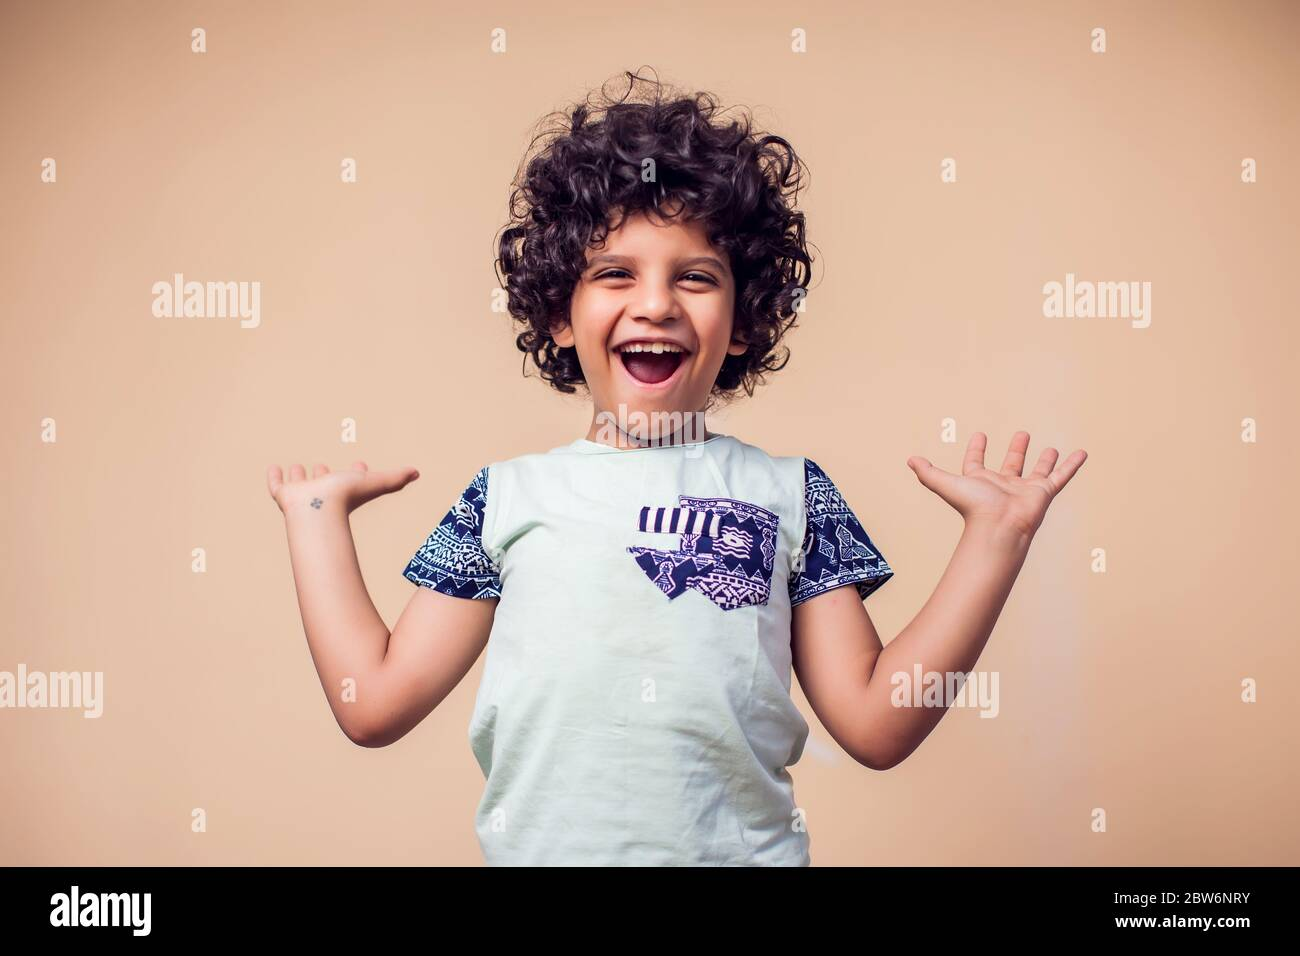 A portrait of surprised kid boy with curly hair. Children and emotions concept Stock Photo